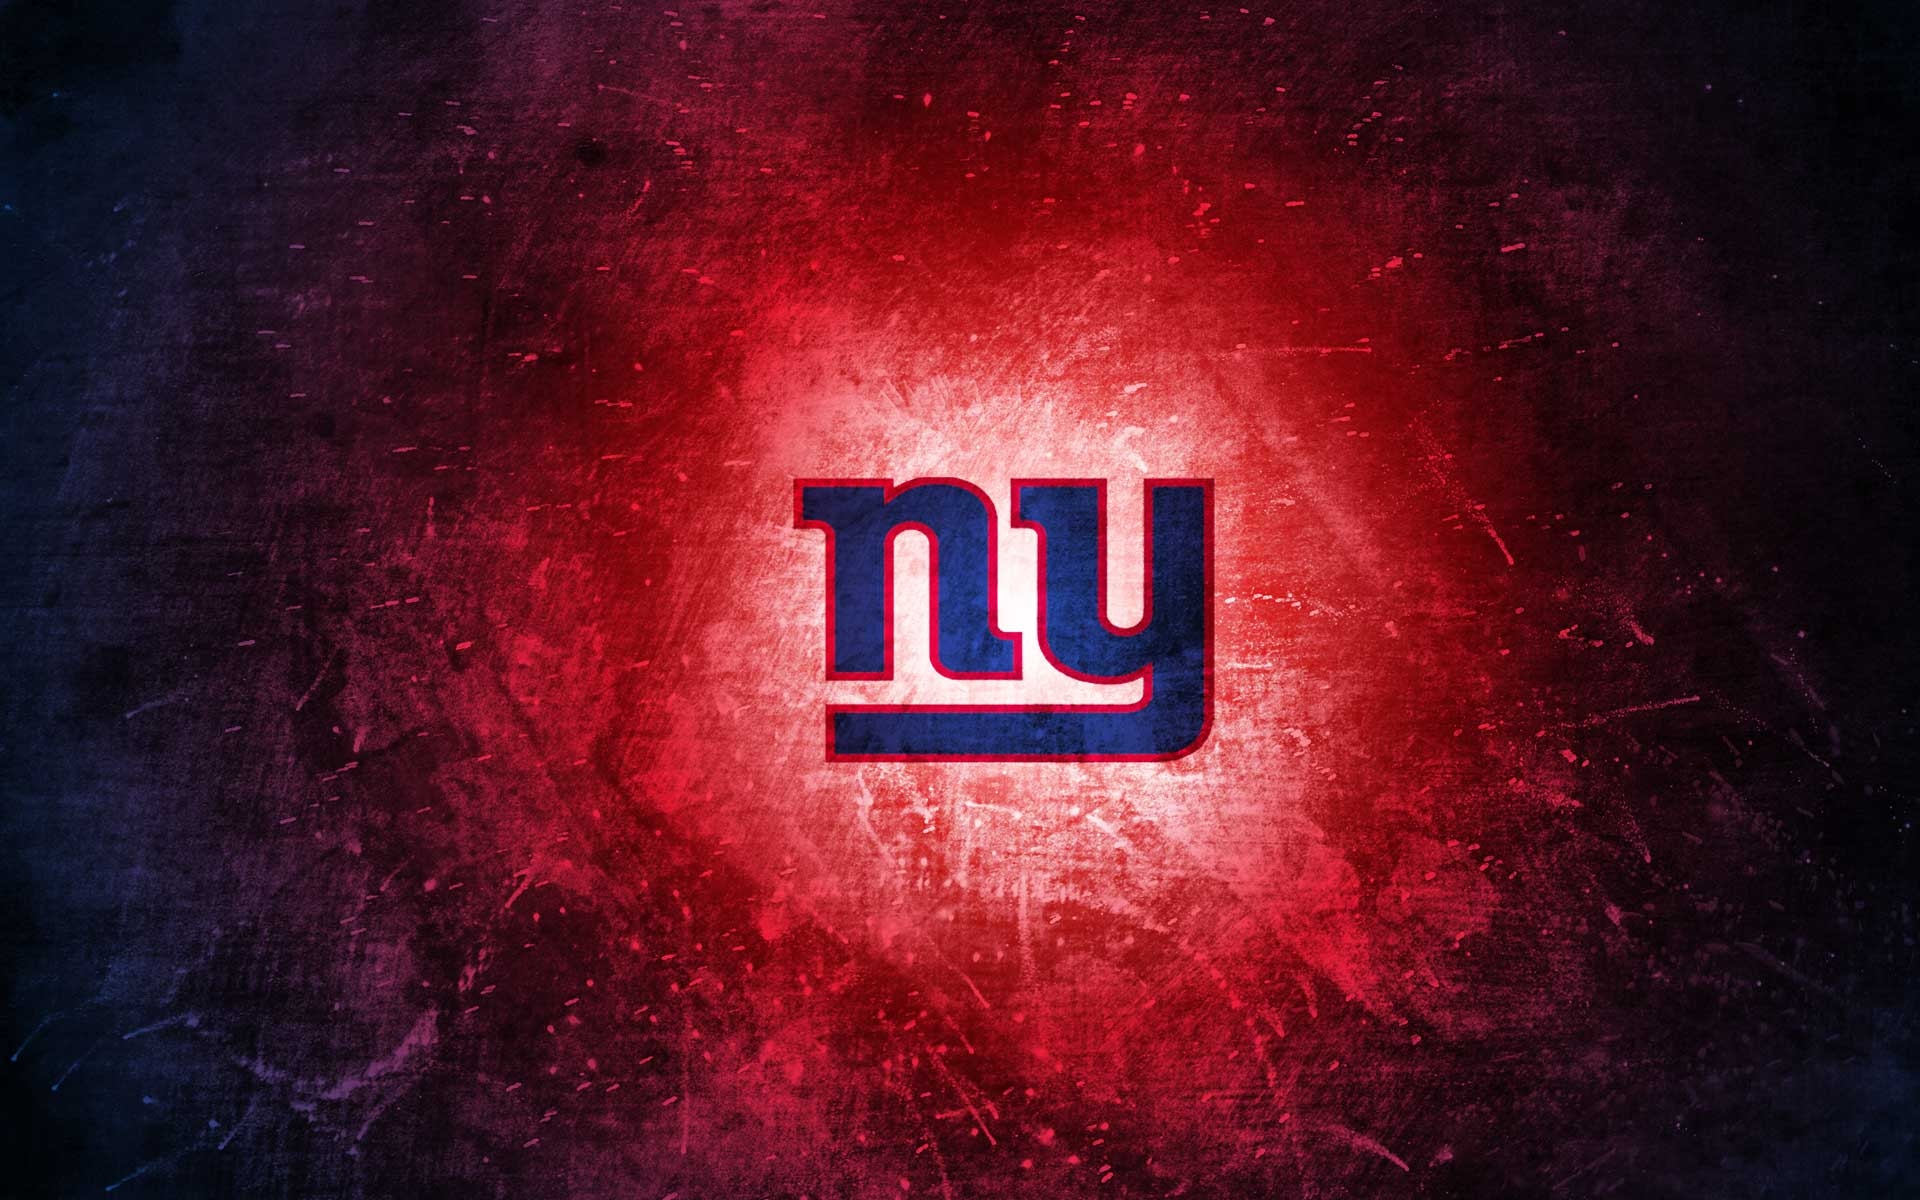 New York Giant Wallpaper